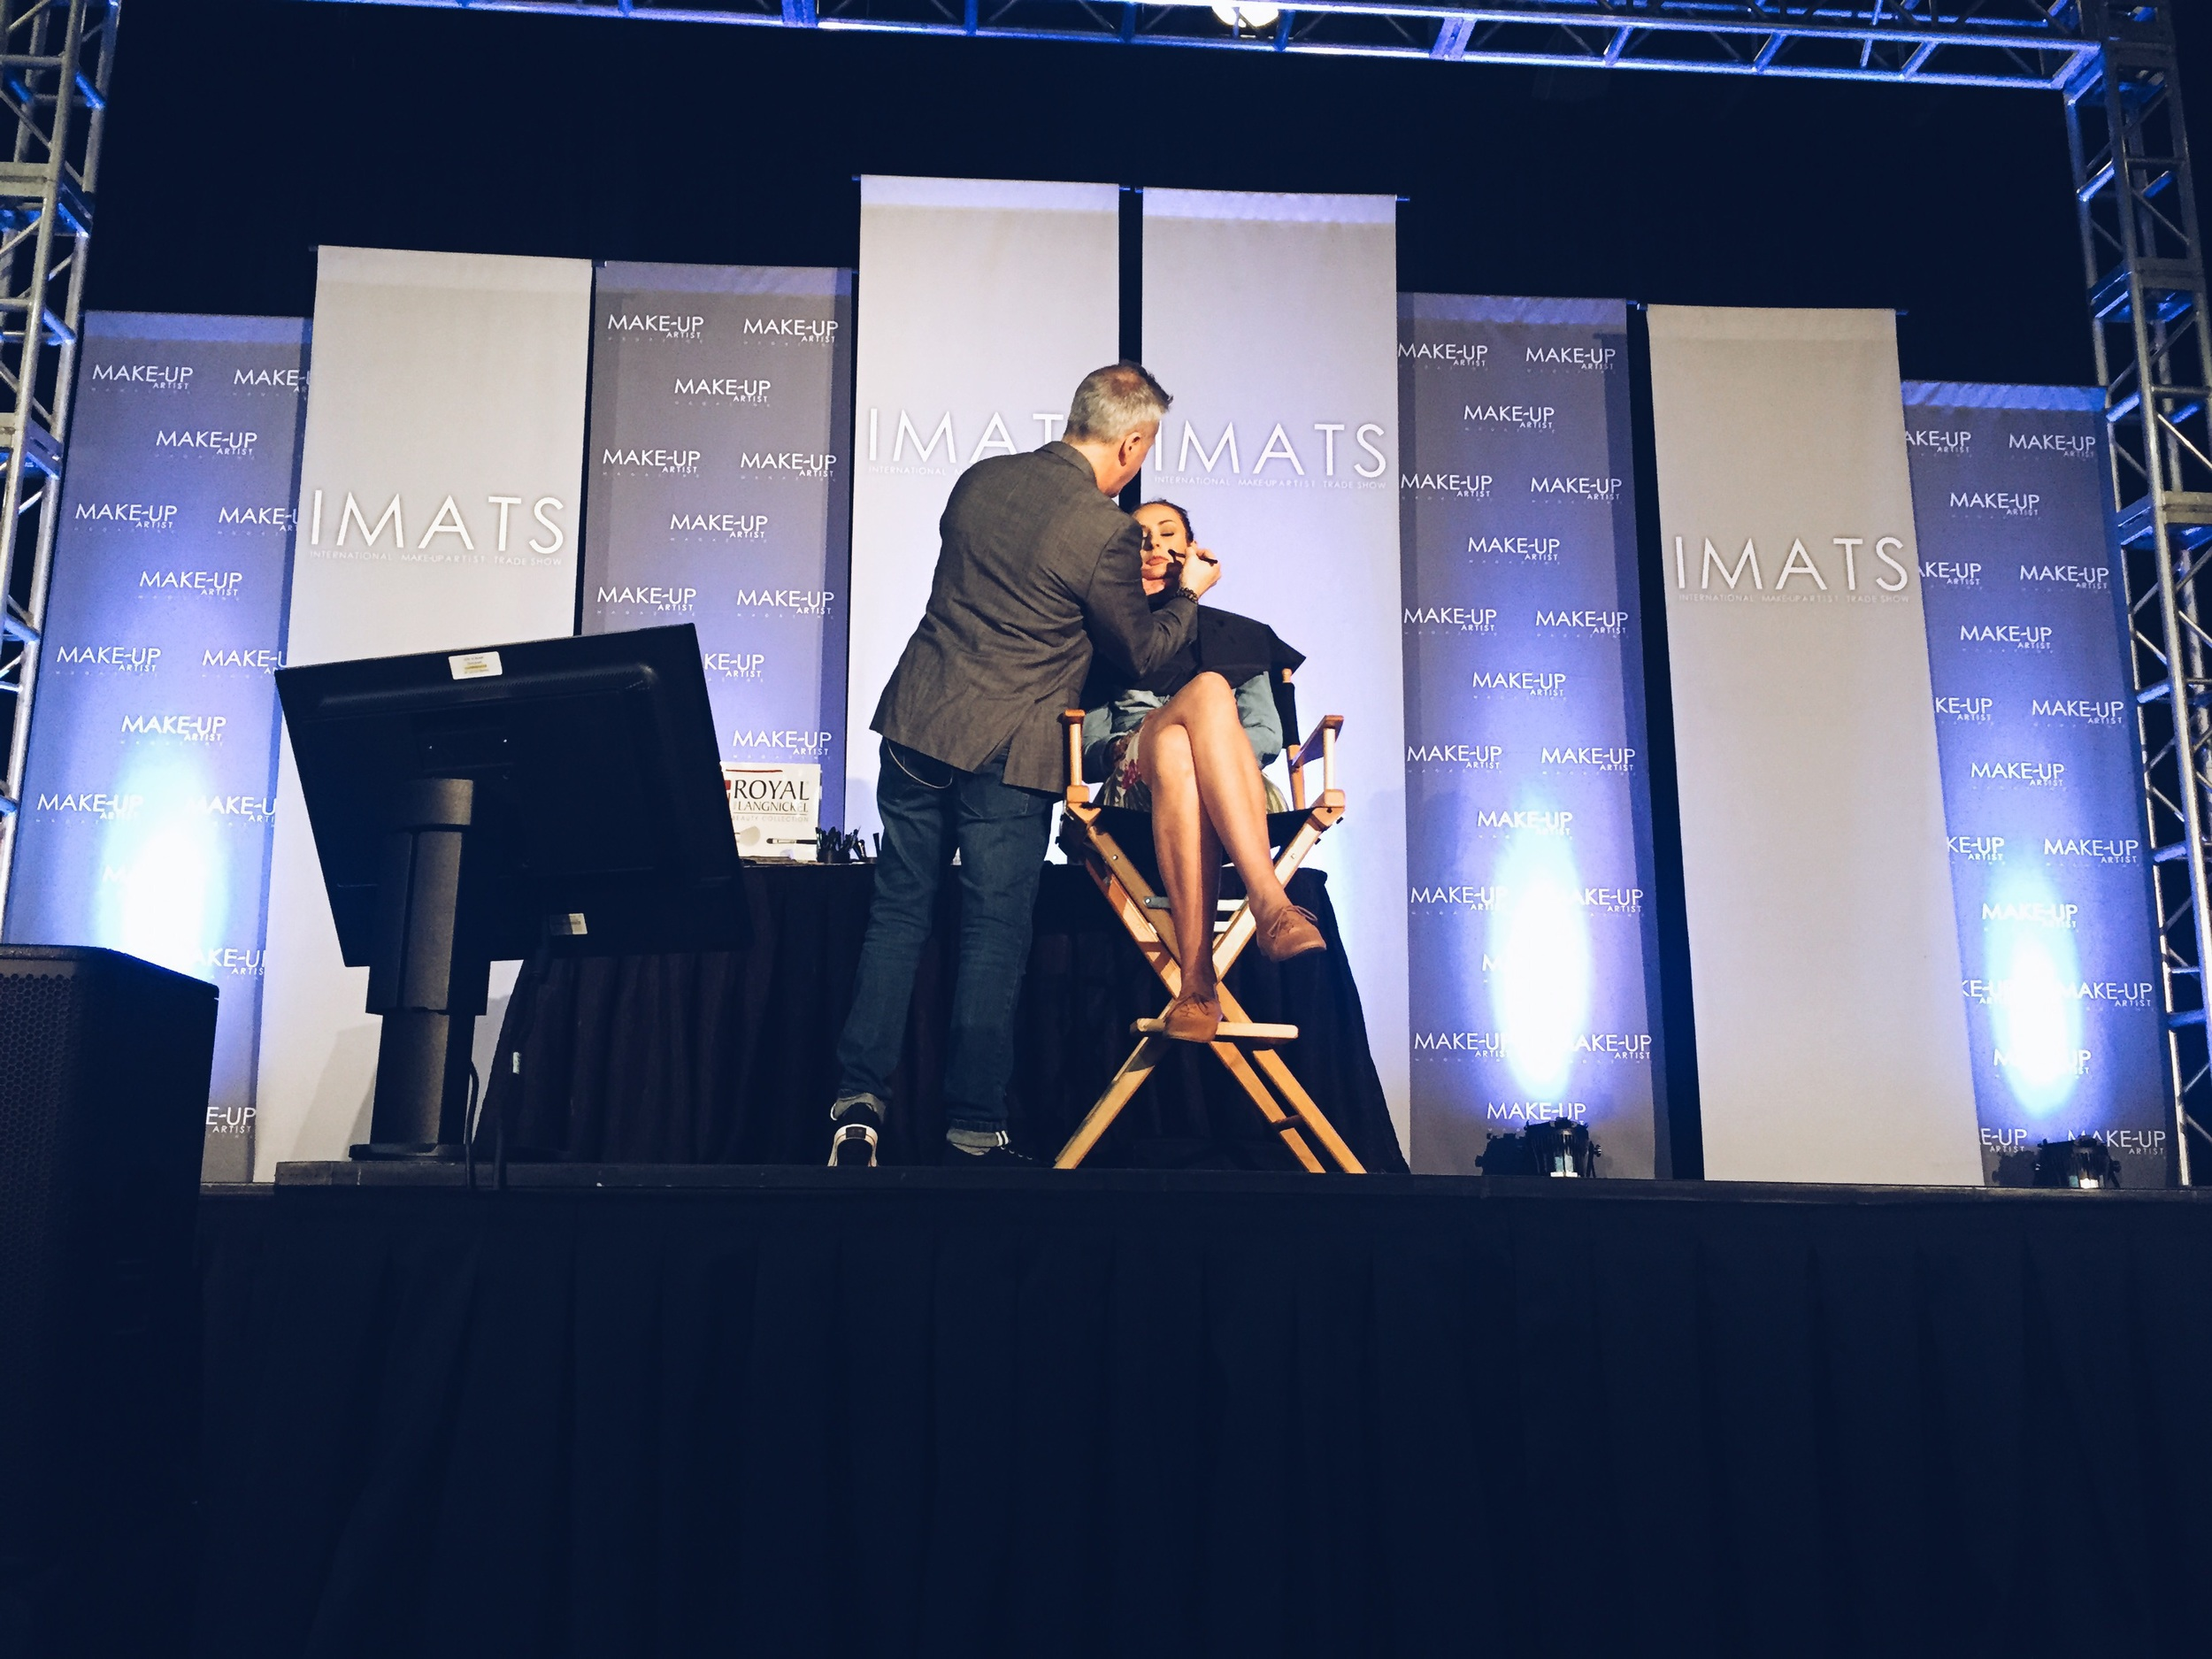 Kevin at work on the IMATS main stage.